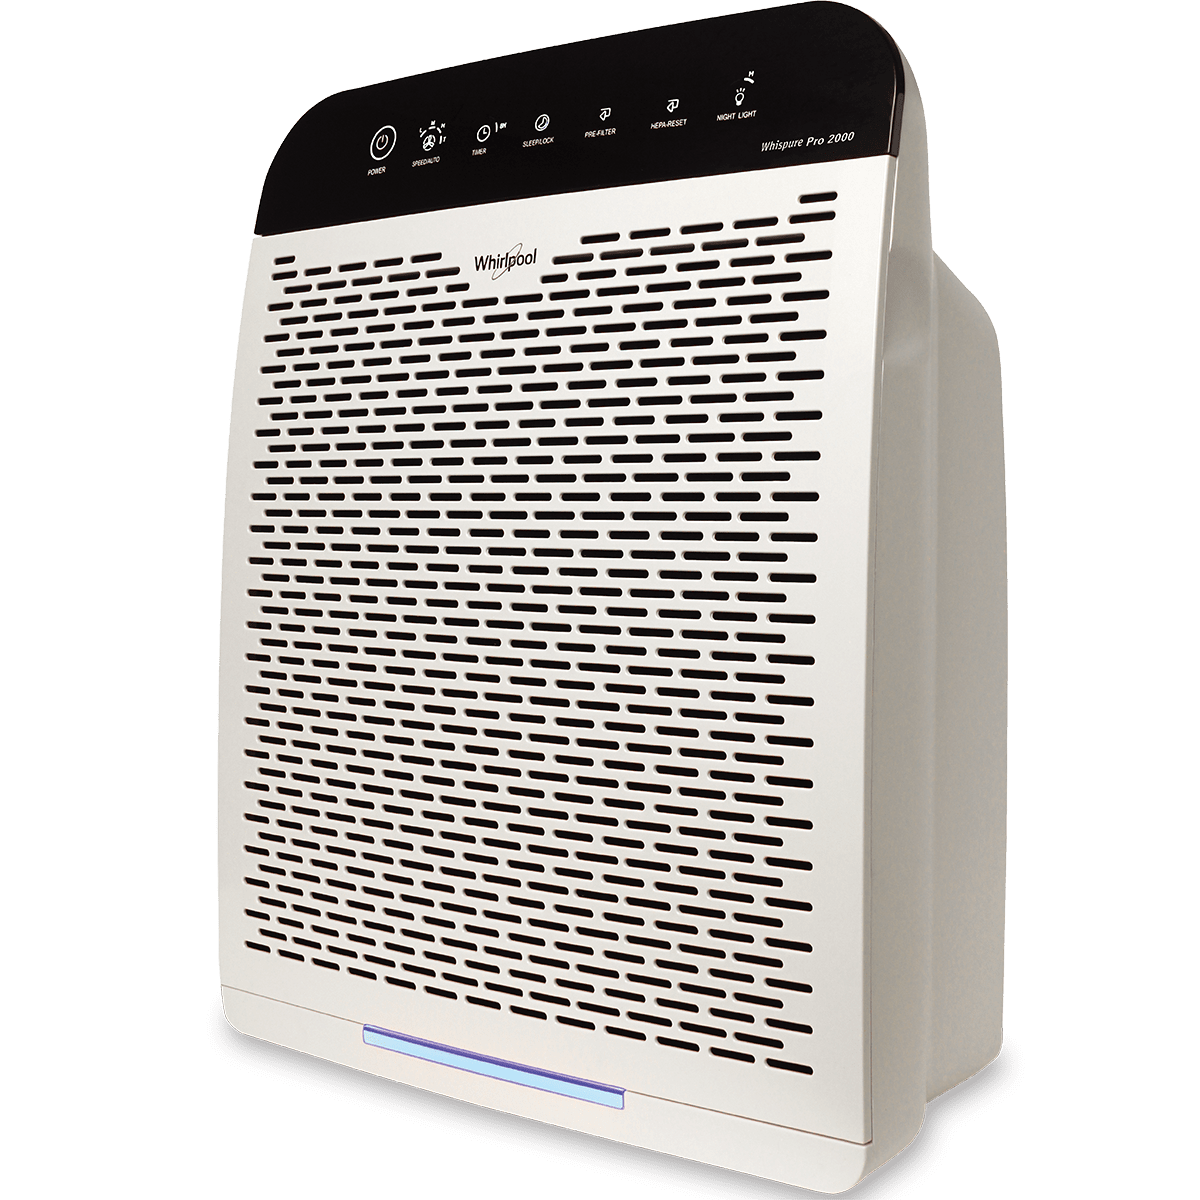 Whirlpool WPPRO2000 Air Purifier